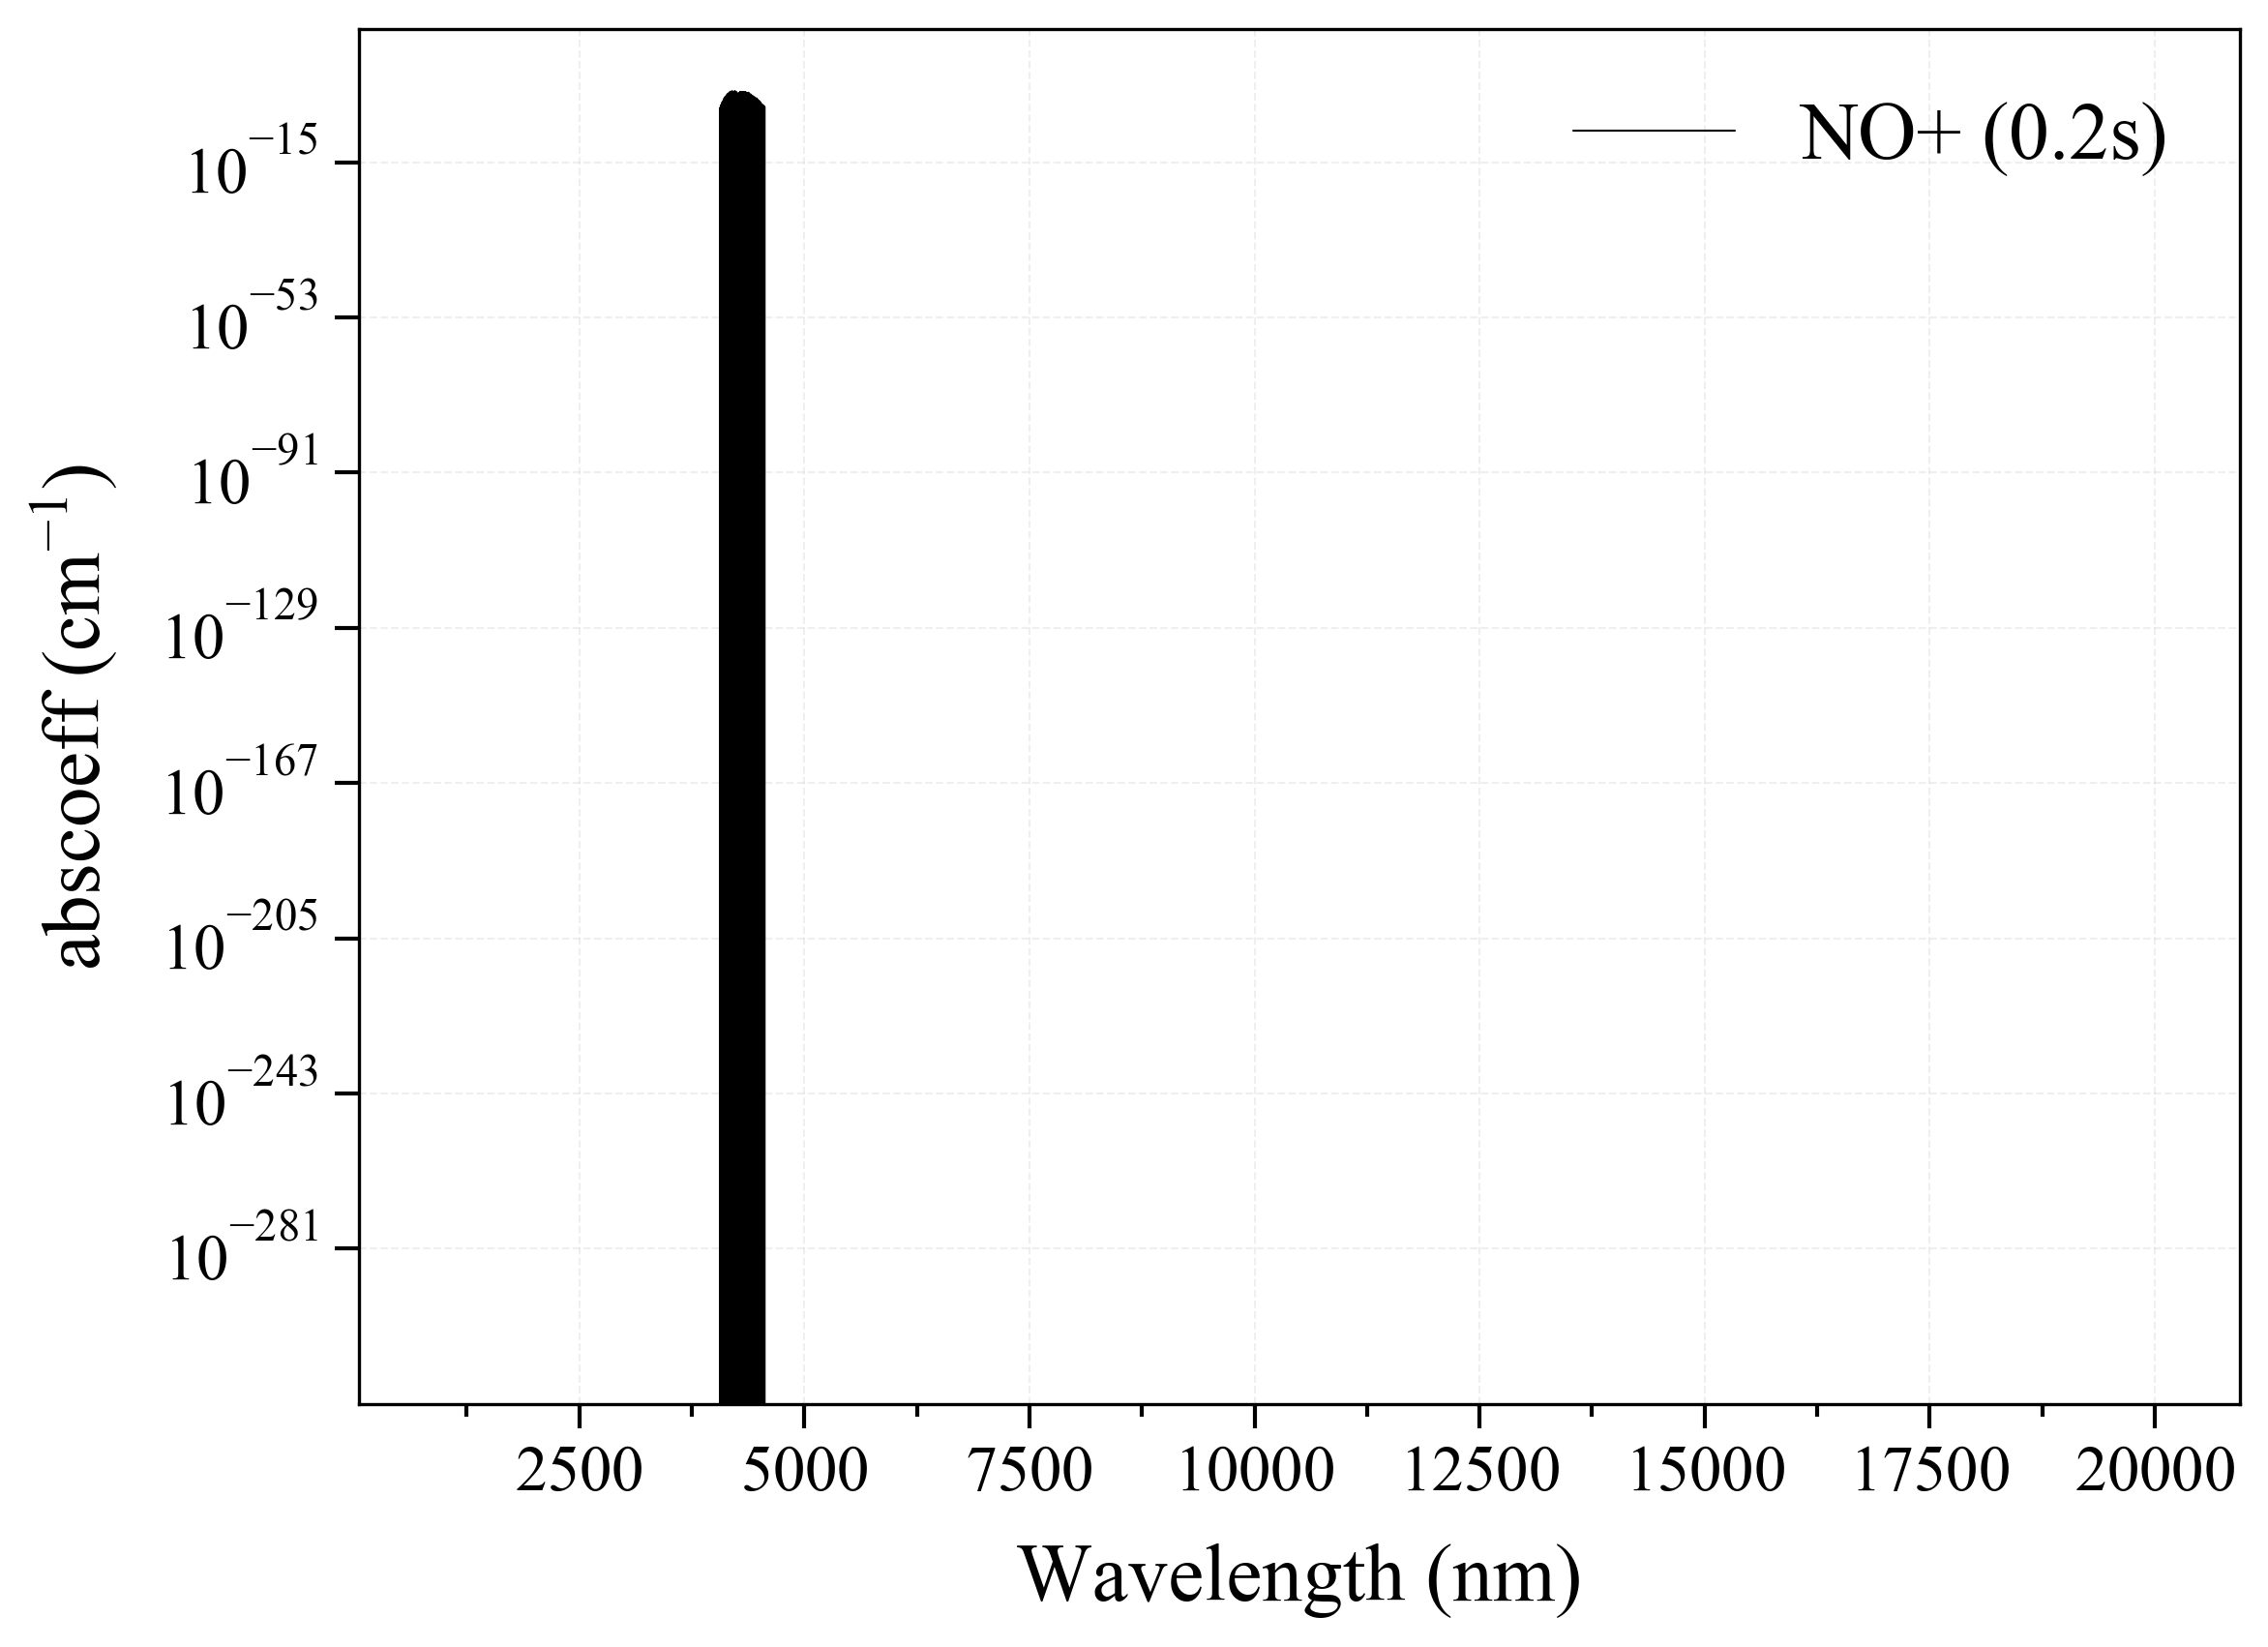 Nitric Oxide Cation NO+ infrared absorption coefficient